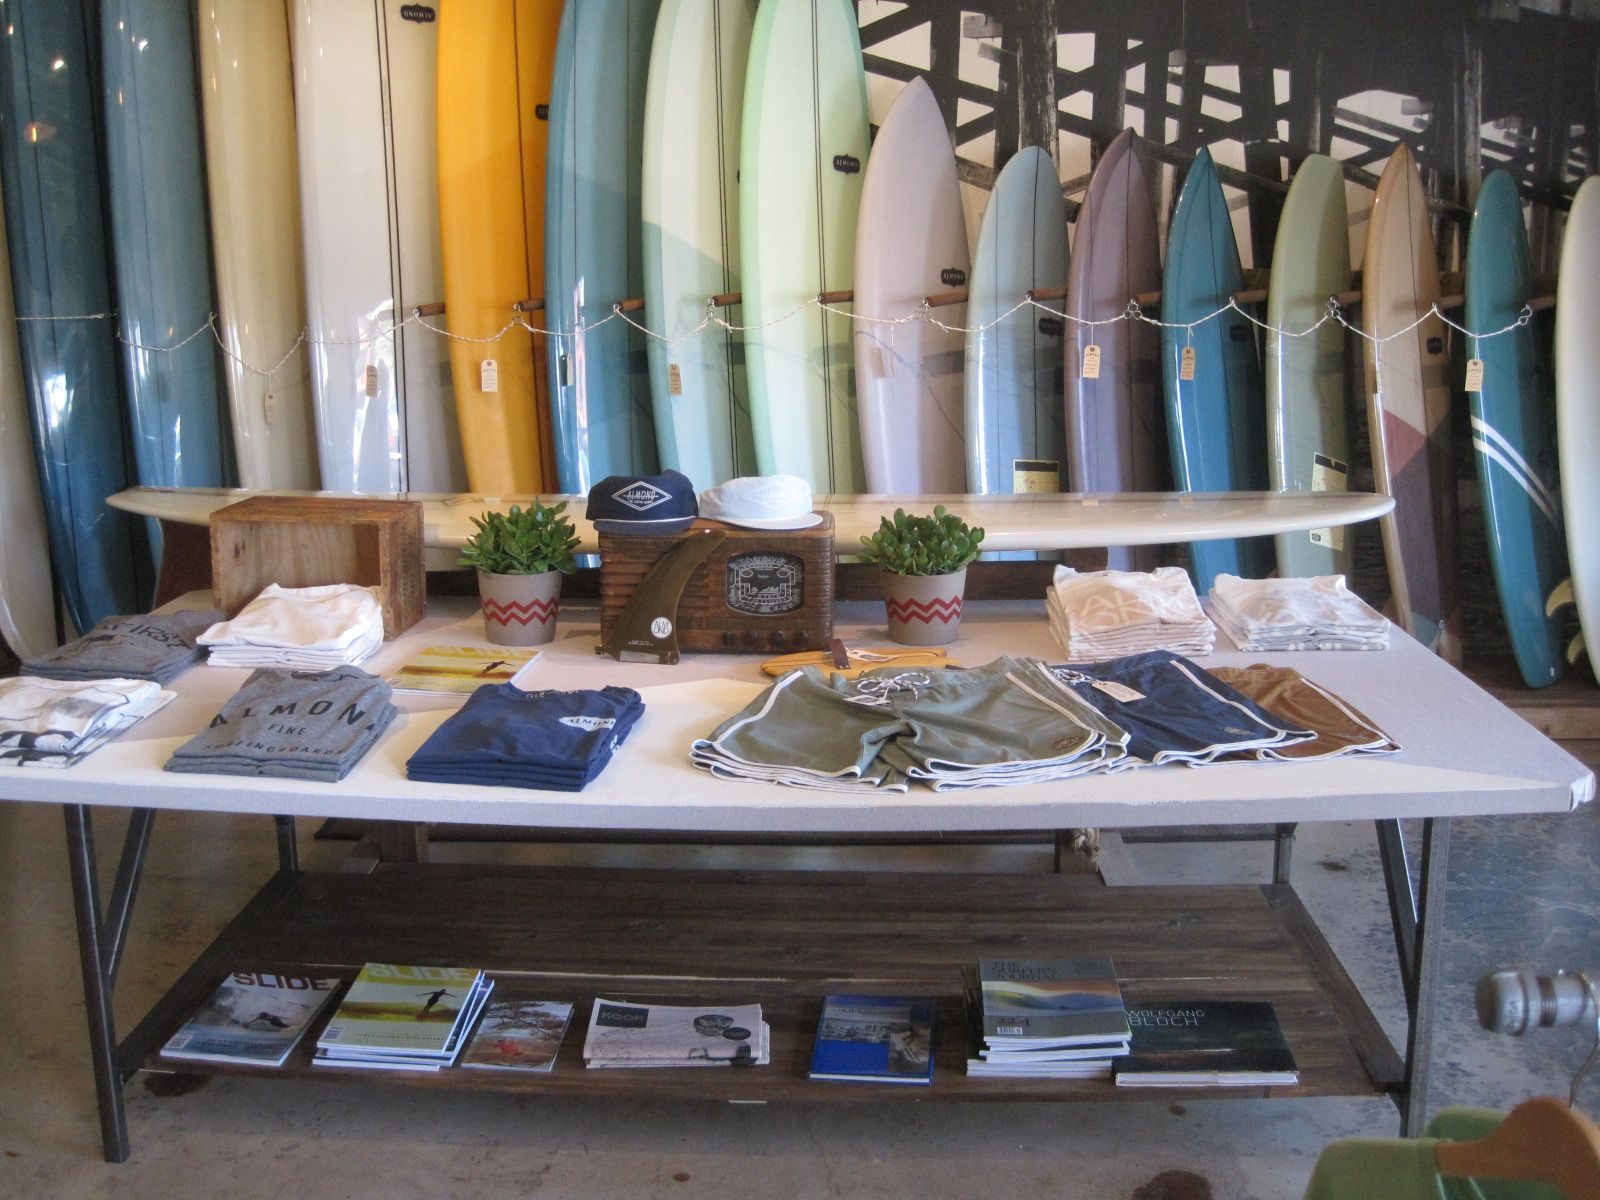 Almond surfshop in Cali